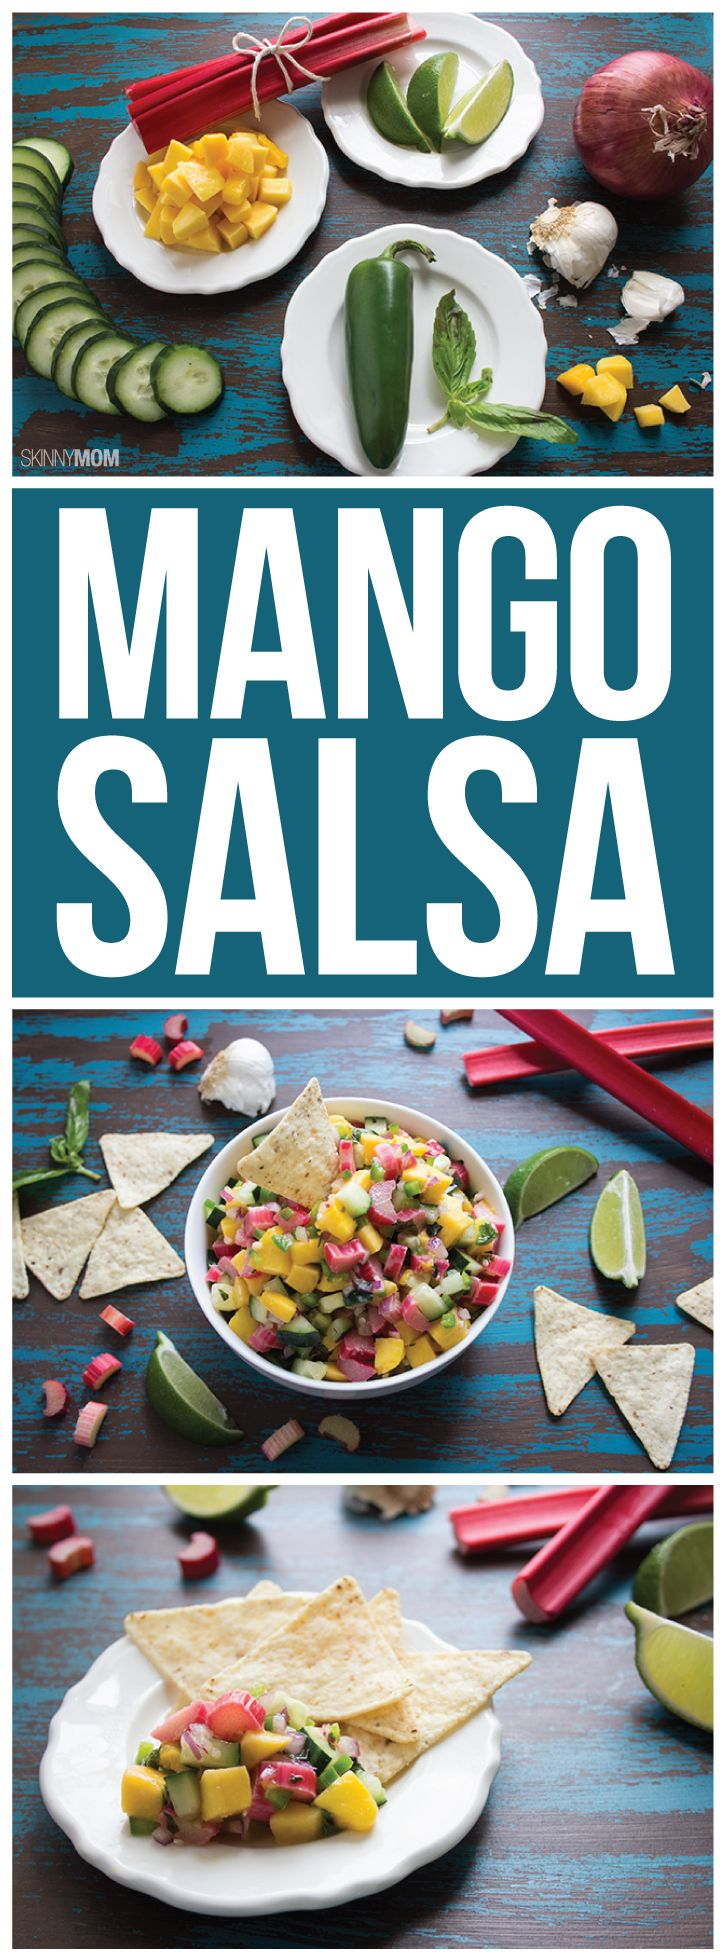 Serve this tasty salsa alone or over our Caribbean Jerk Chicken!